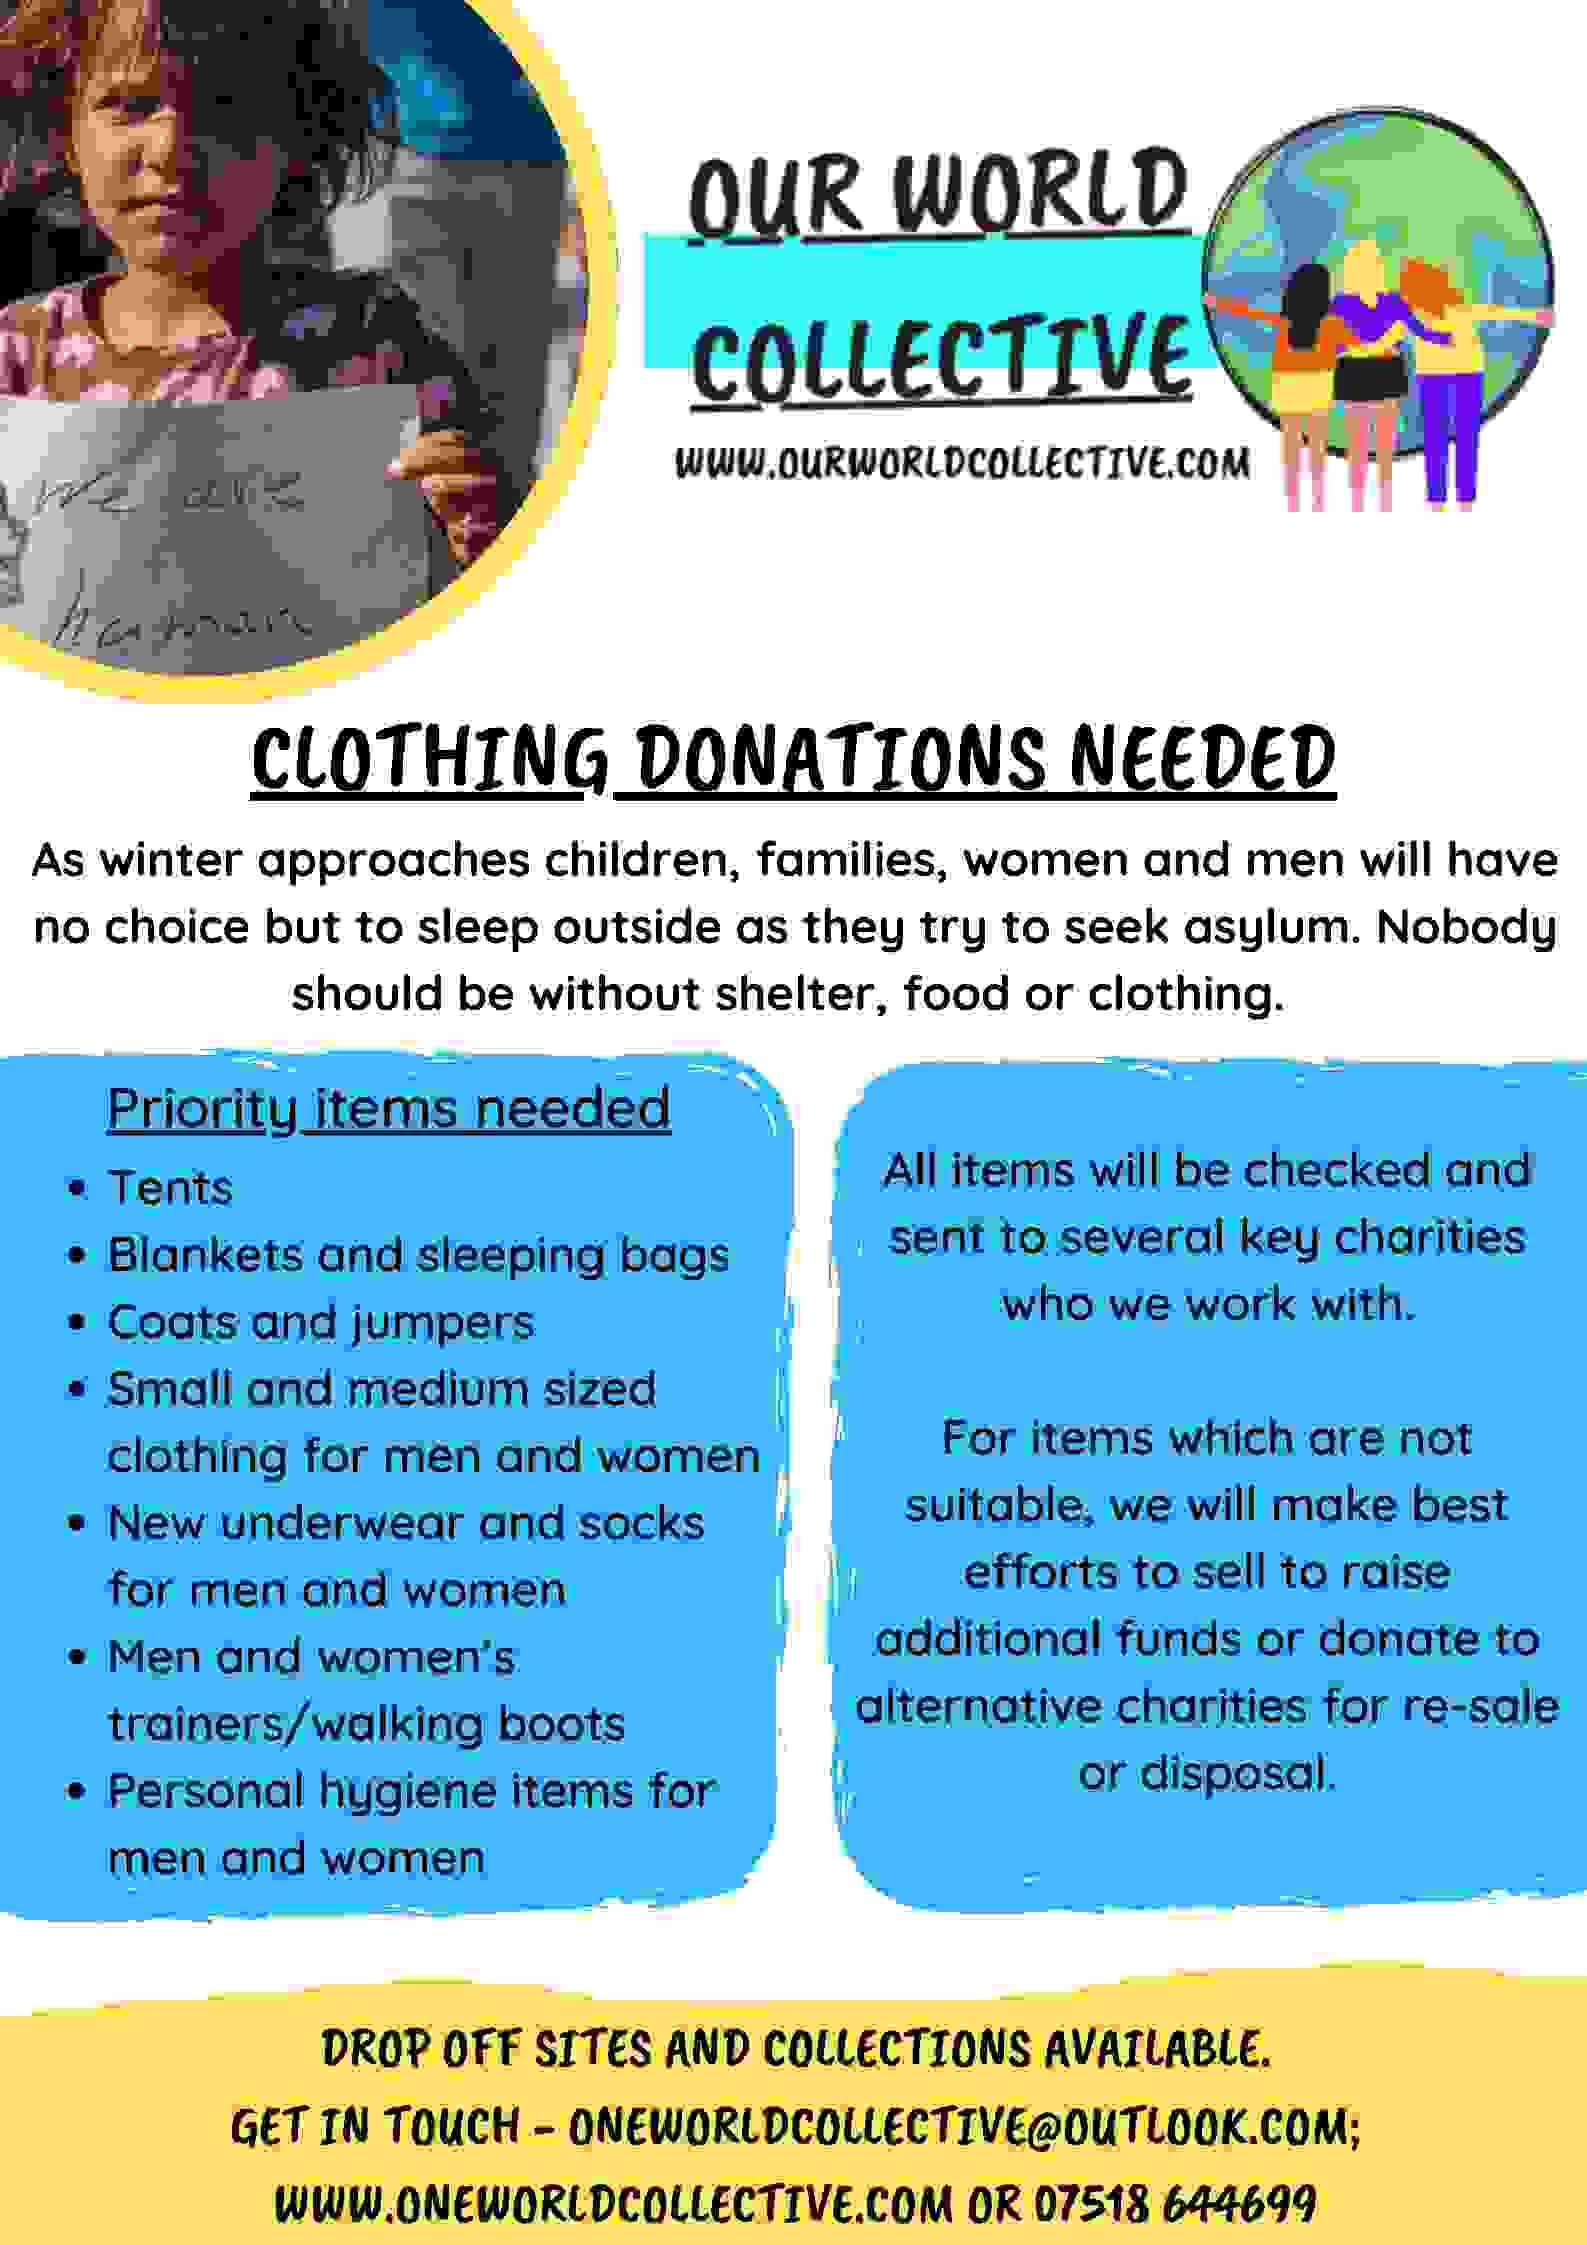 Poster from Our World Collective advertising for clothing donations.